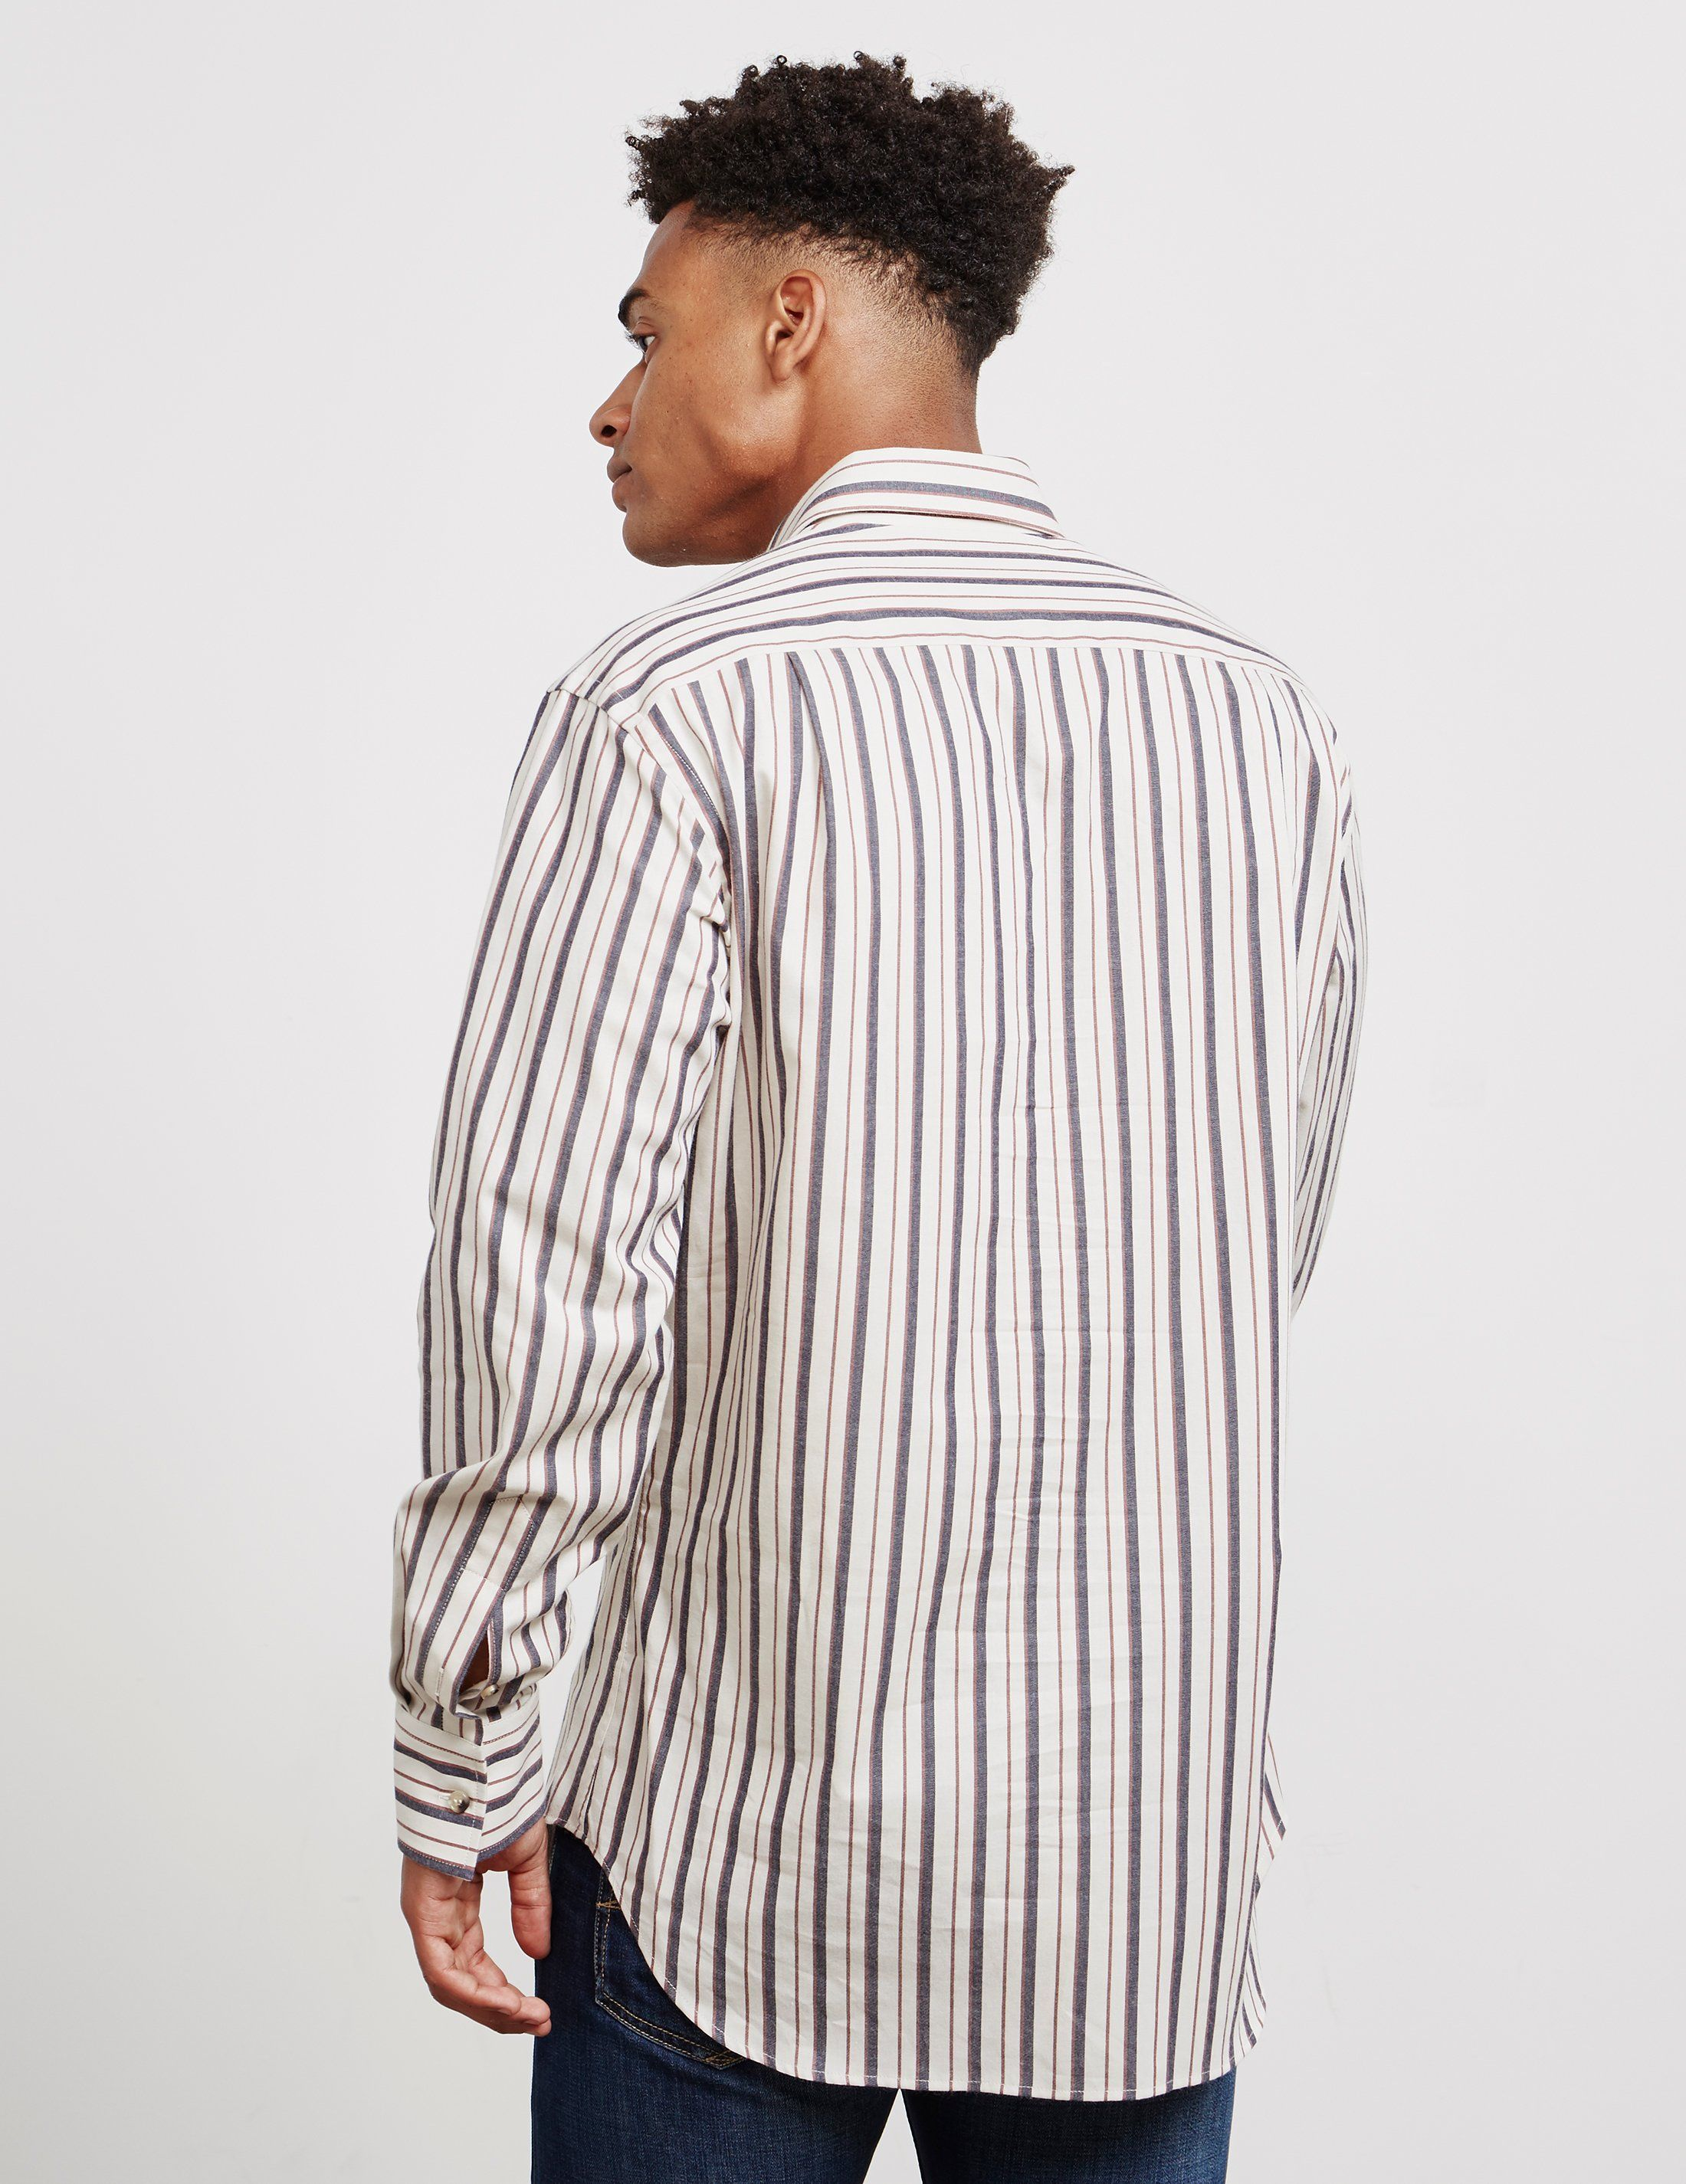 Vivienne Westwood Stripe Long Sleeve Shirt